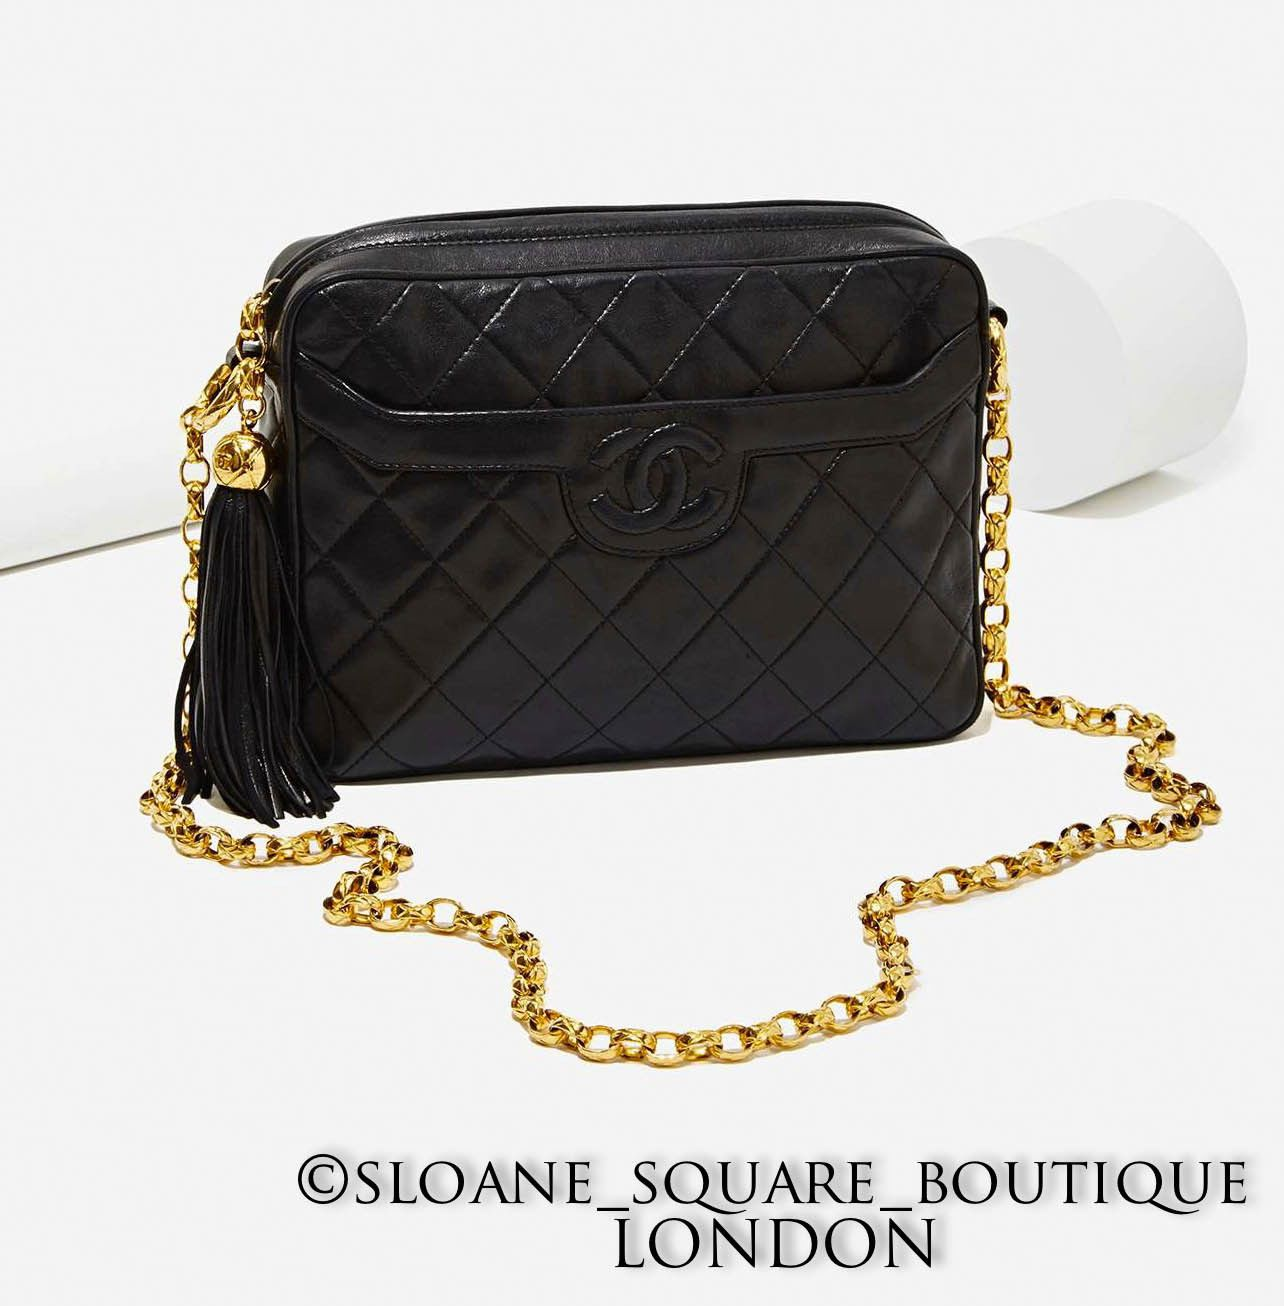 b2e9f42fa1fb CHANEL Vintage Tassel Quilted Camera Bag in Black Lambskin Leather GHW  HARRODS | eBay